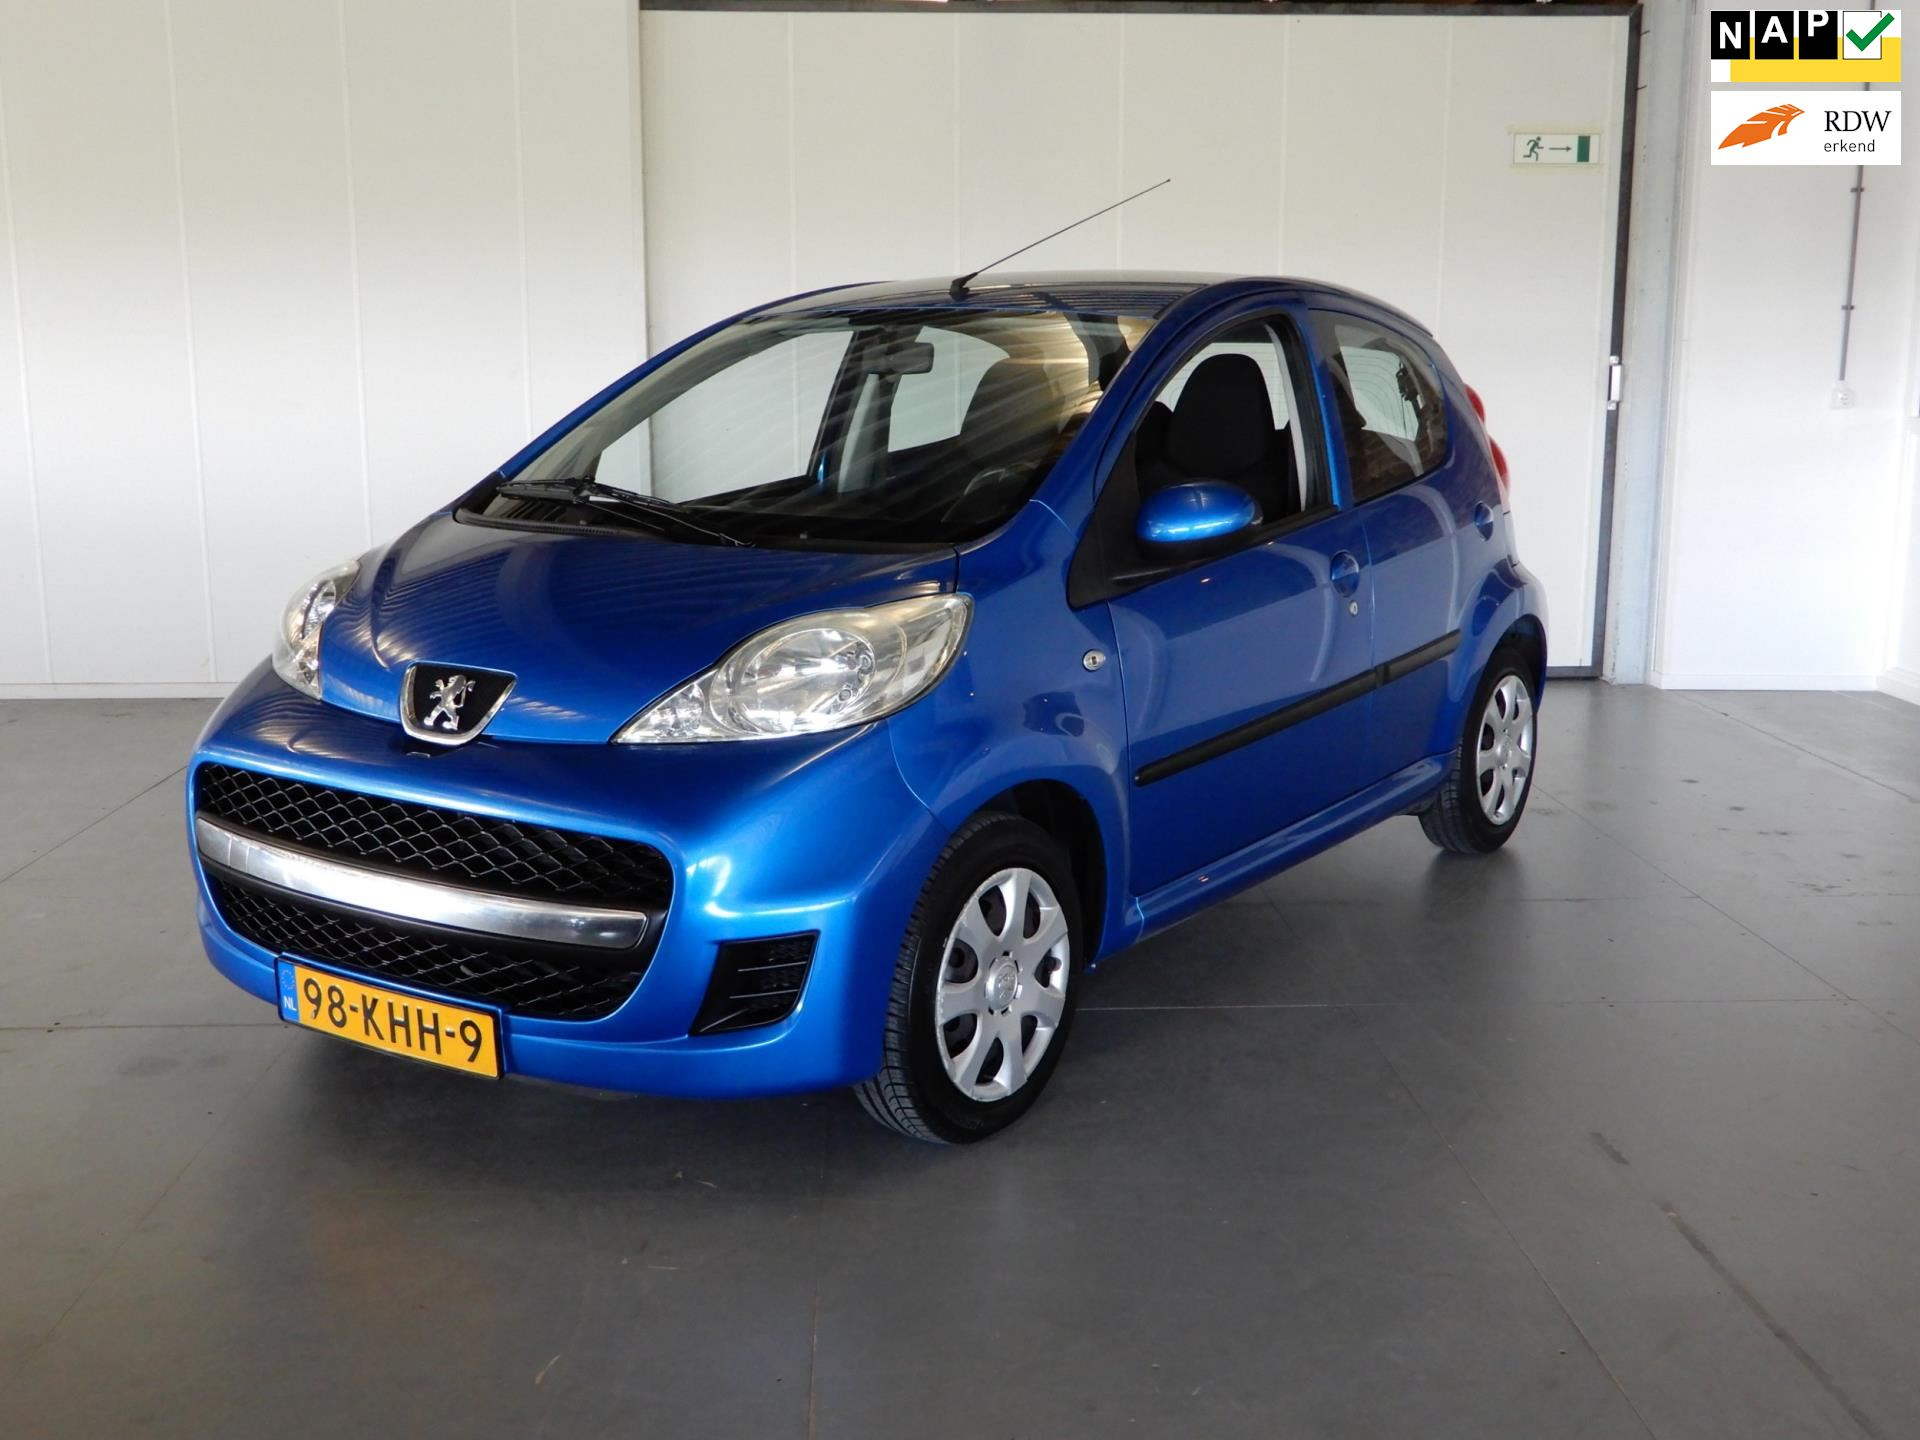 Peugeot 107 occasion - Autohuis Oosterhout